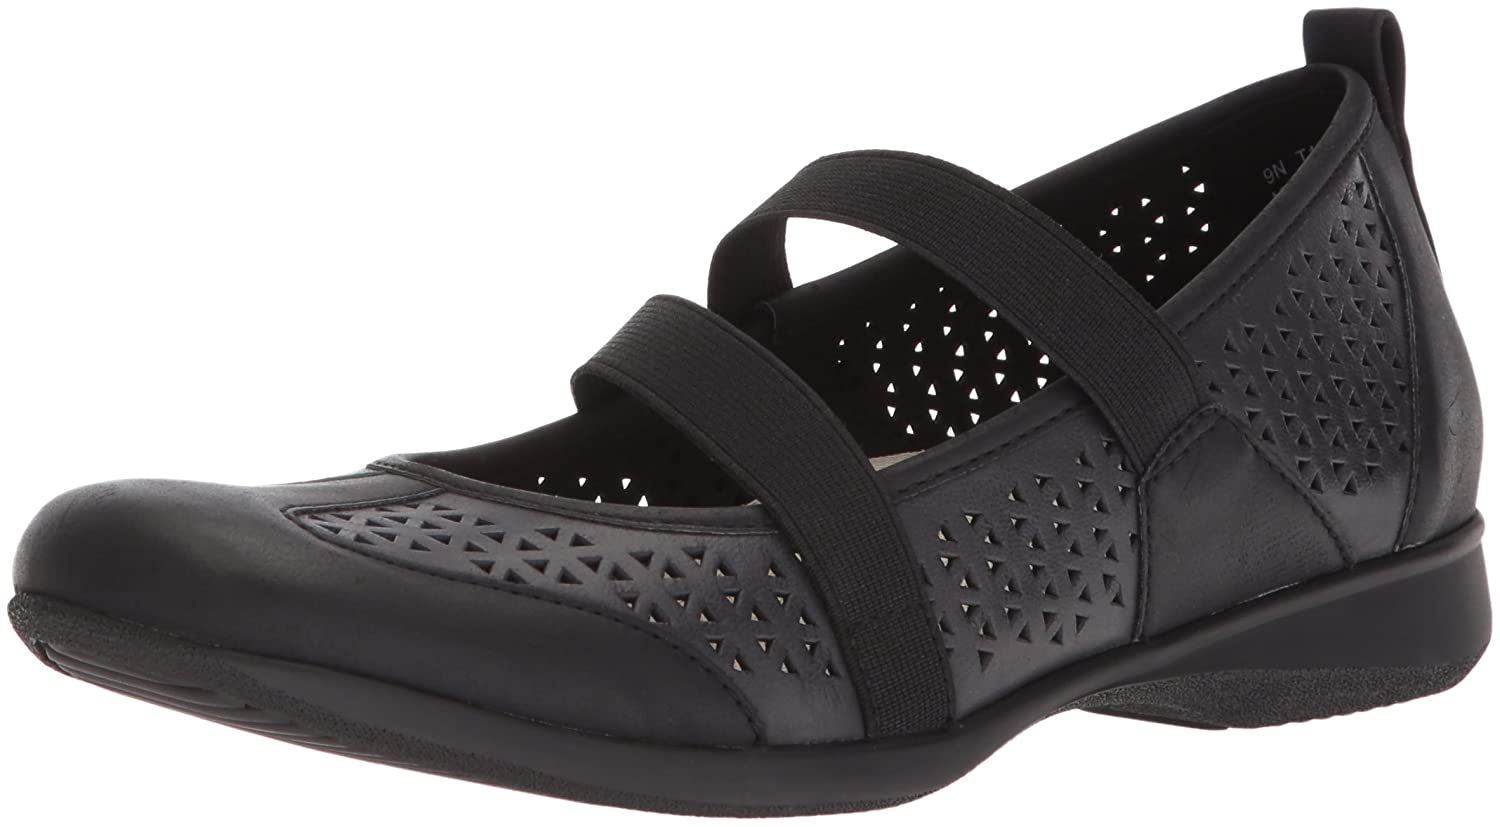 Trotters Women's Josie Mary Jane Flat B073C2PPSC 9.5 2W US|Black